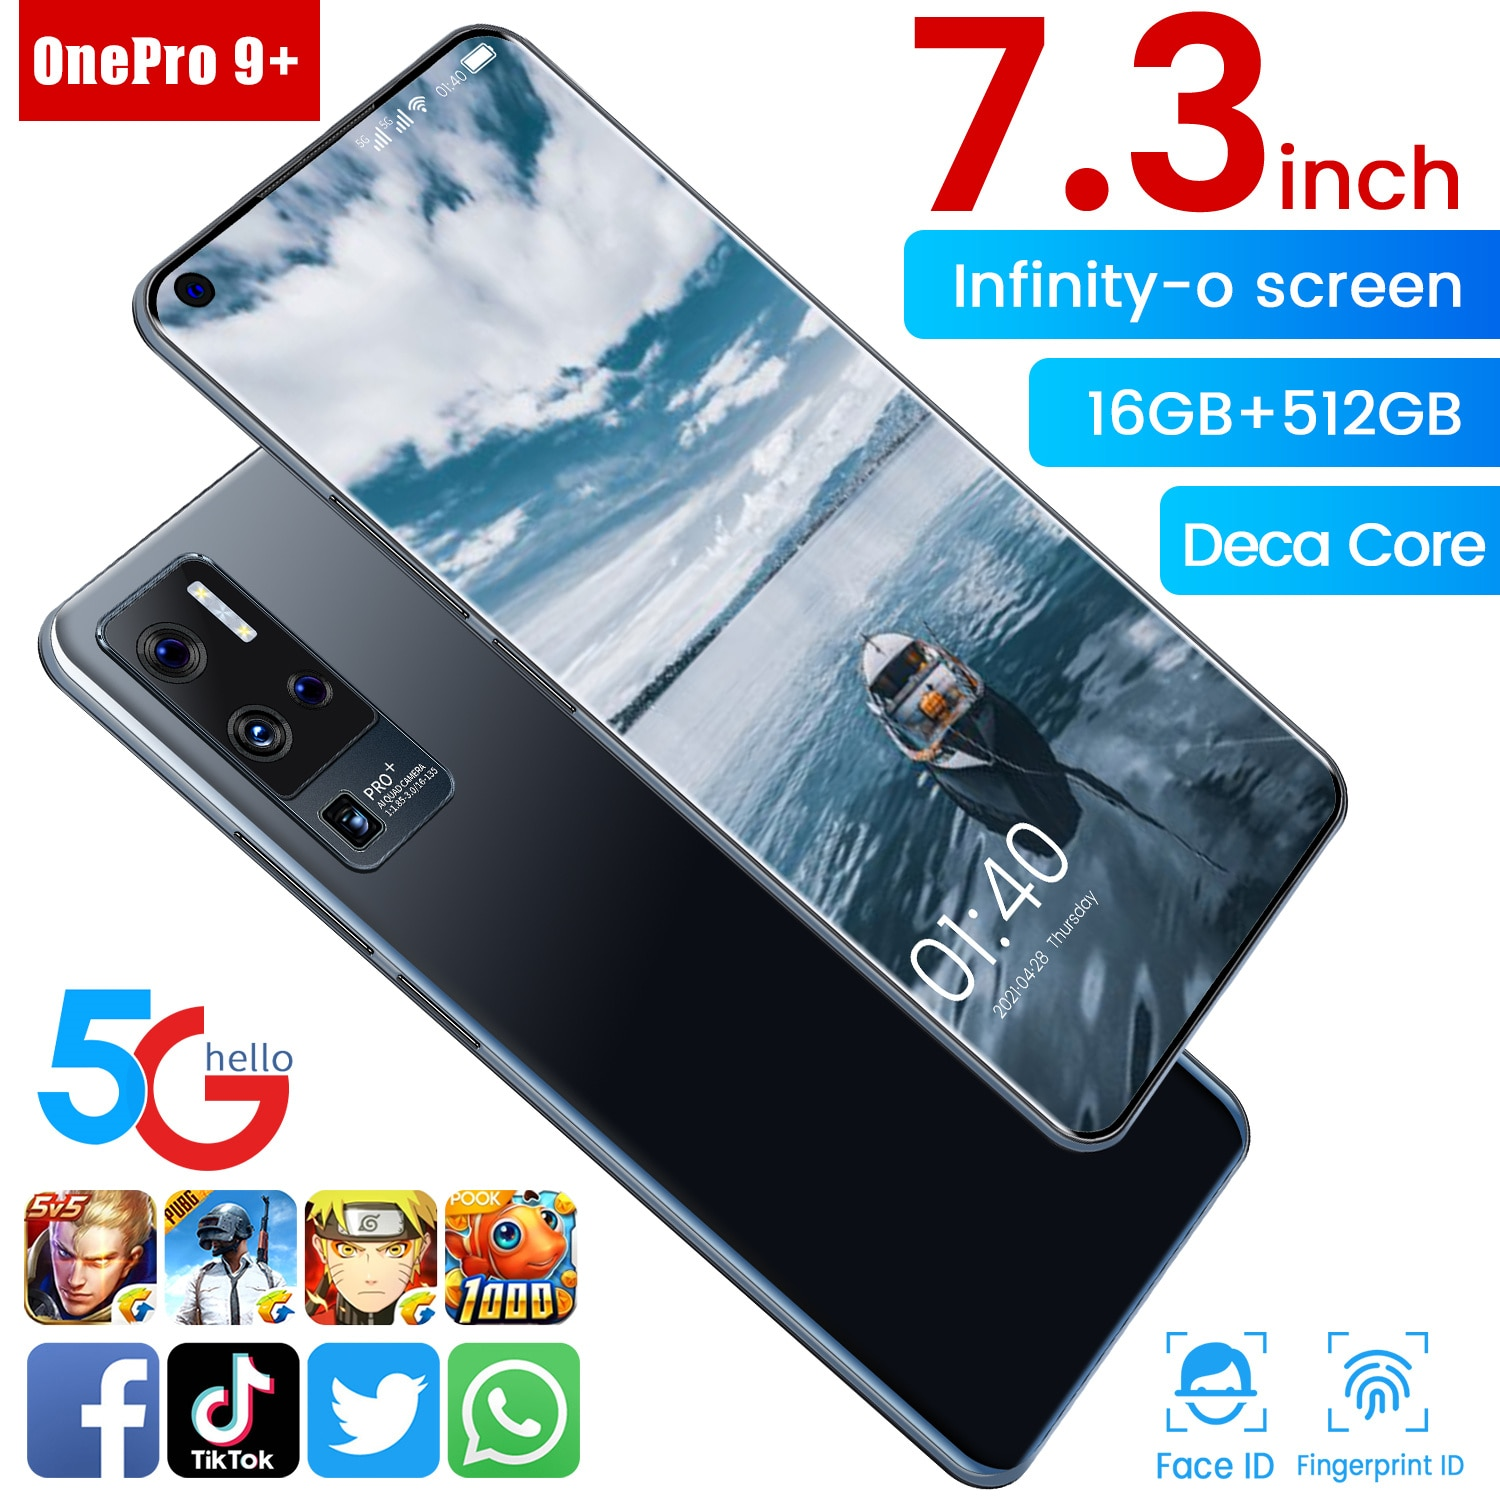 Global OnePro 9+ 7.3Inch Smartphone Android11 16GB RAM512GB ROM 6800mAh Snapdragon 888 Deca Core CPU